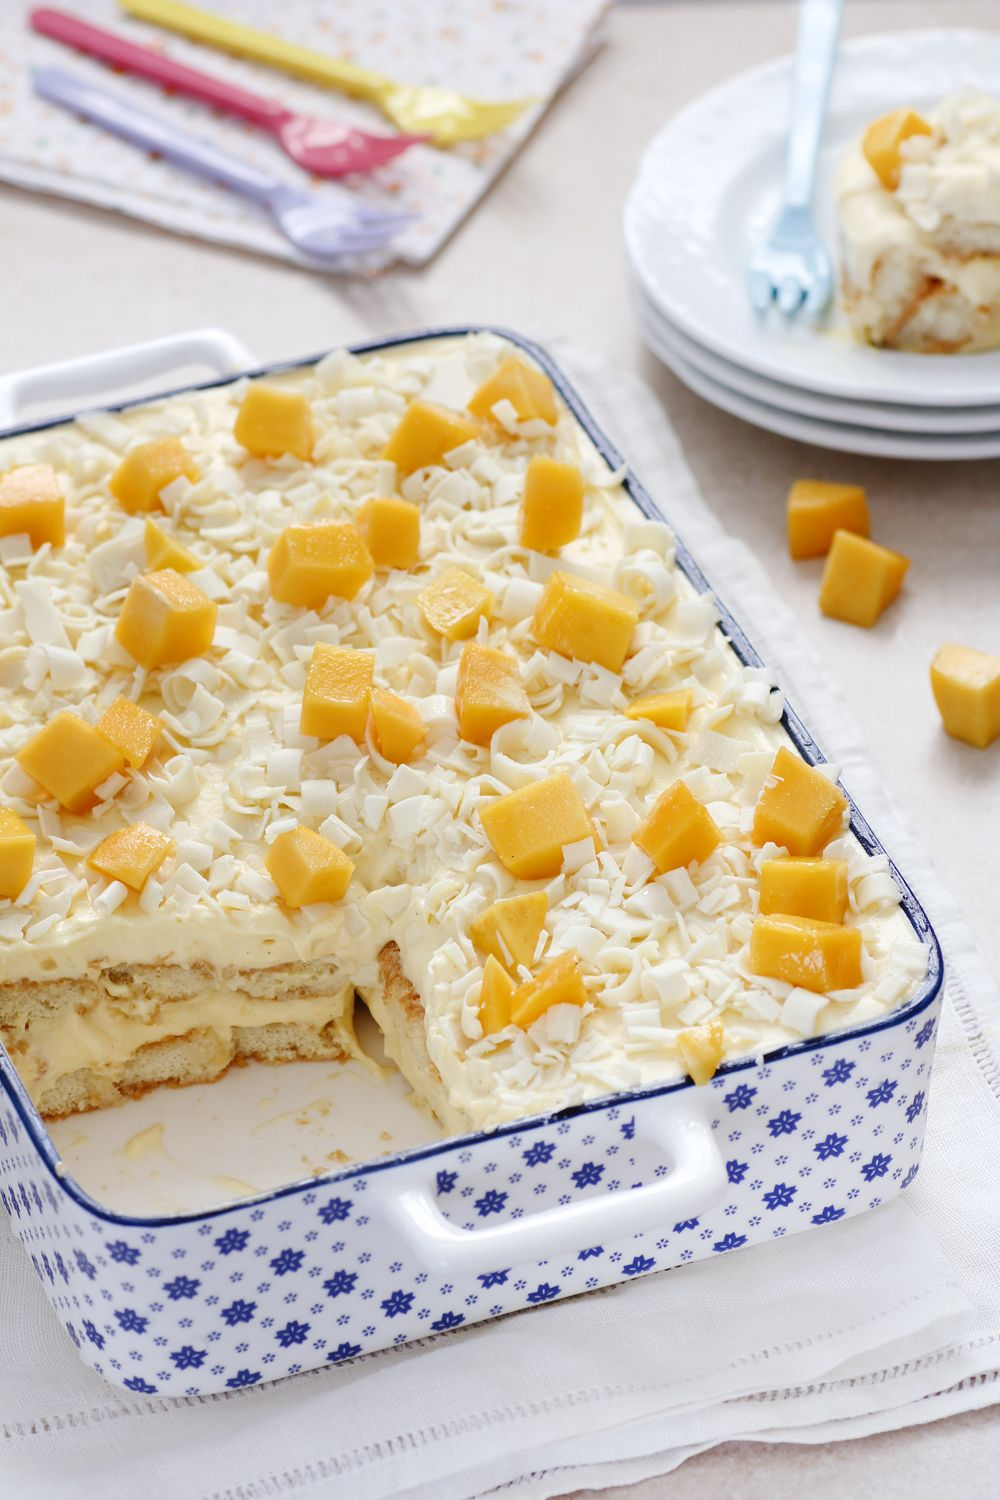 Mango Tiramisu with White Chocolate